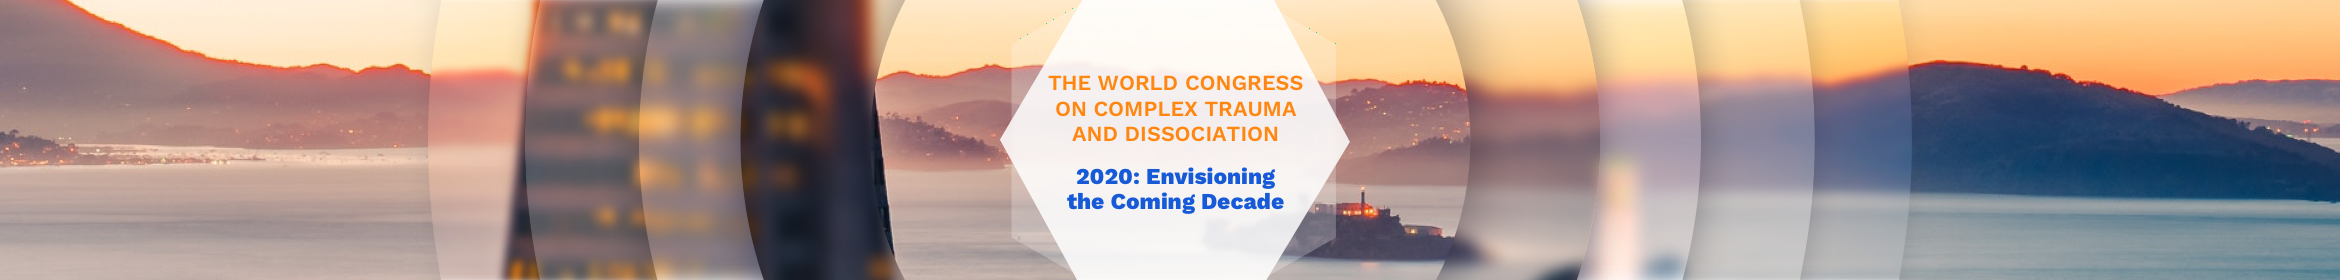 The World Congress on Complex Trauma and Dissociation 2020: Envisioning the Coming Decade Main banner